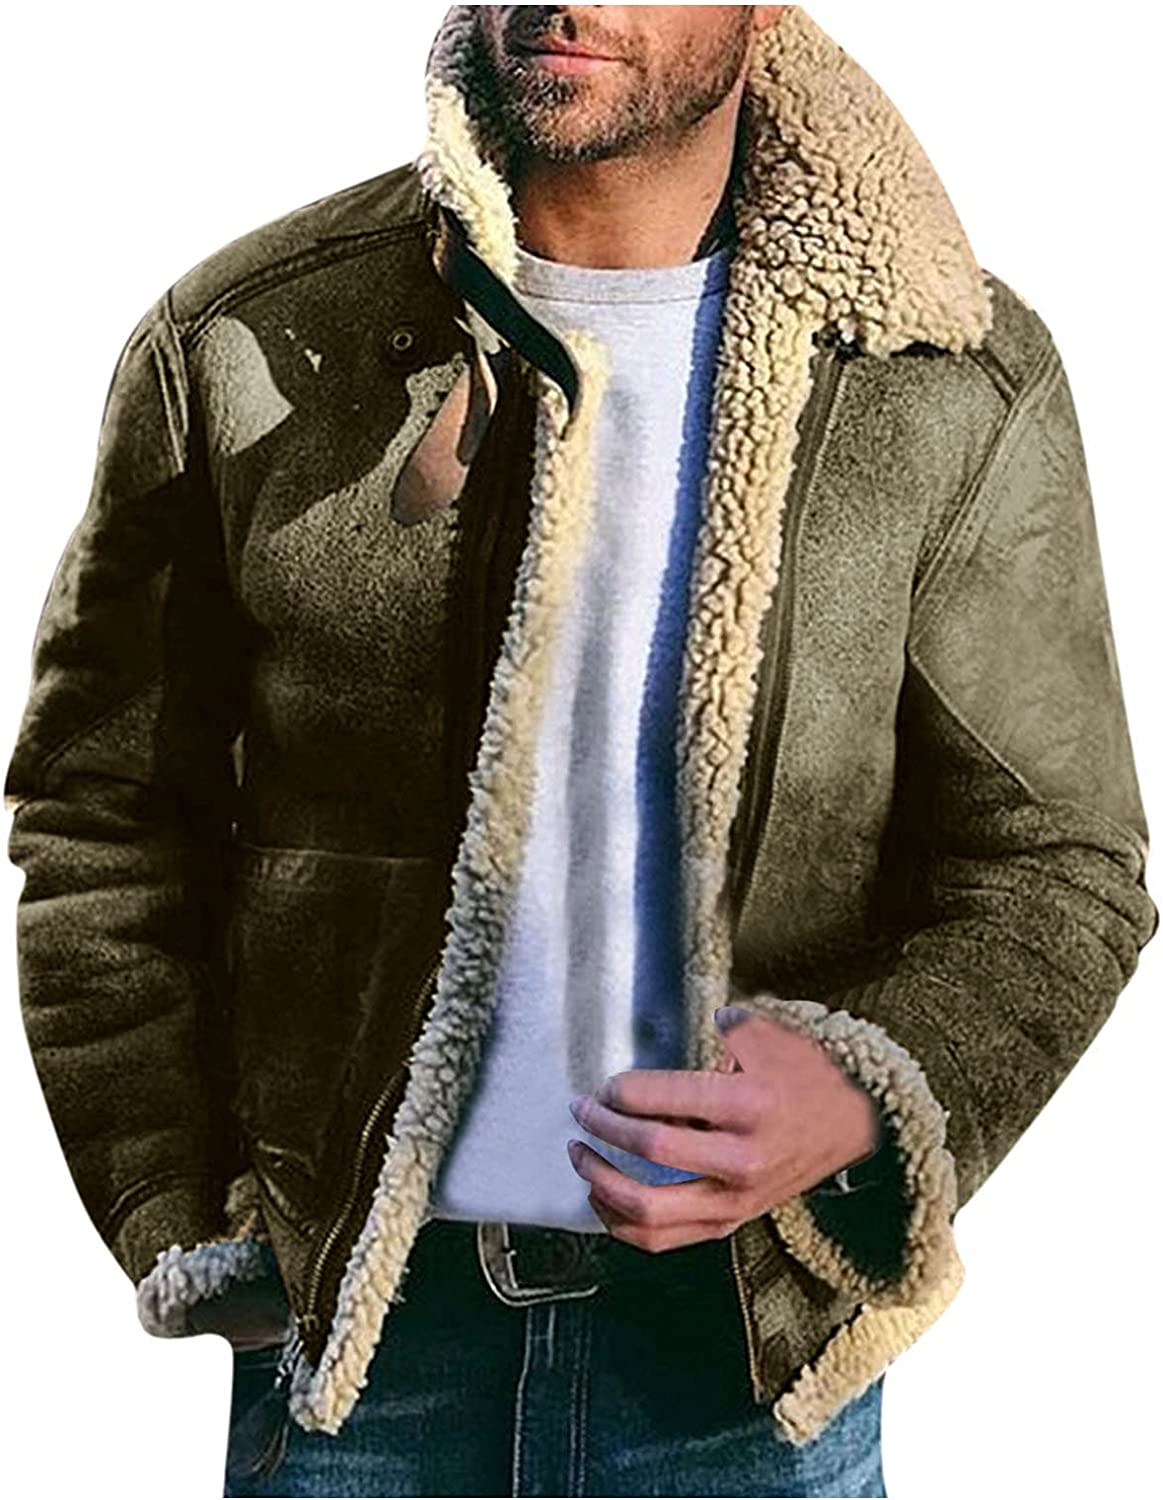 Winter Warm Jackets Coats for Men, Casual Sherpa Fleece Lined Jackets Fur Collar Trench Coats Big and Tall Outwears